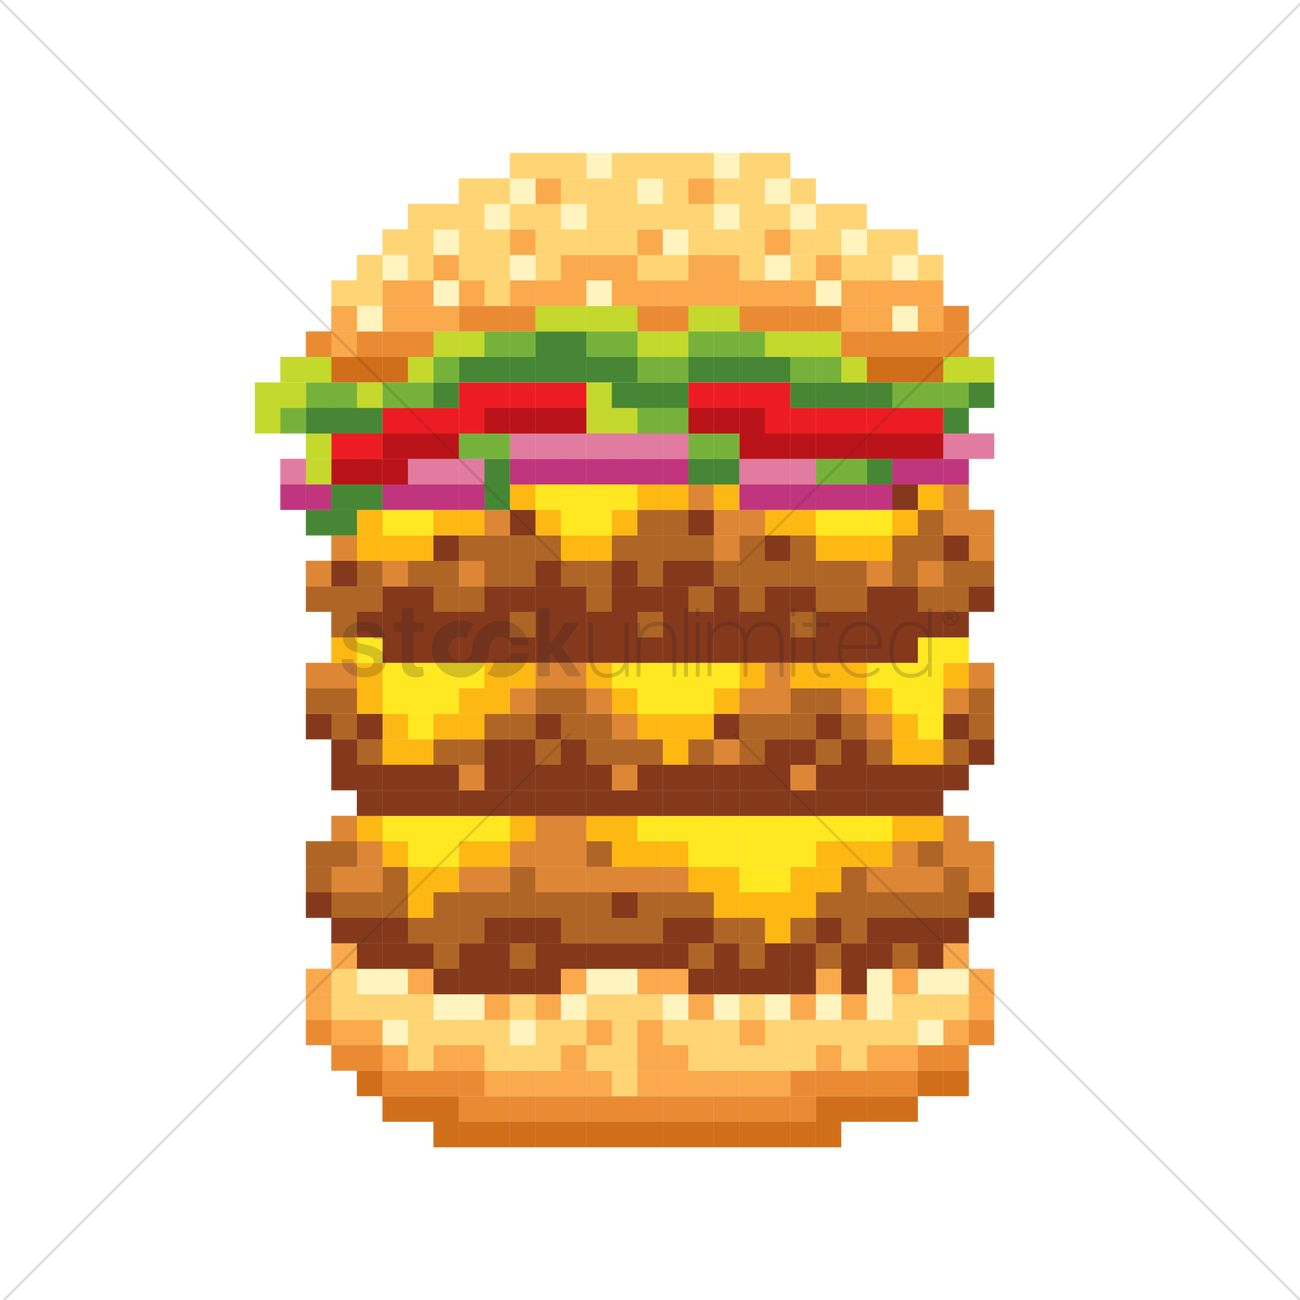 Pixel Art Triple Patty Burger Vector Image 1987371